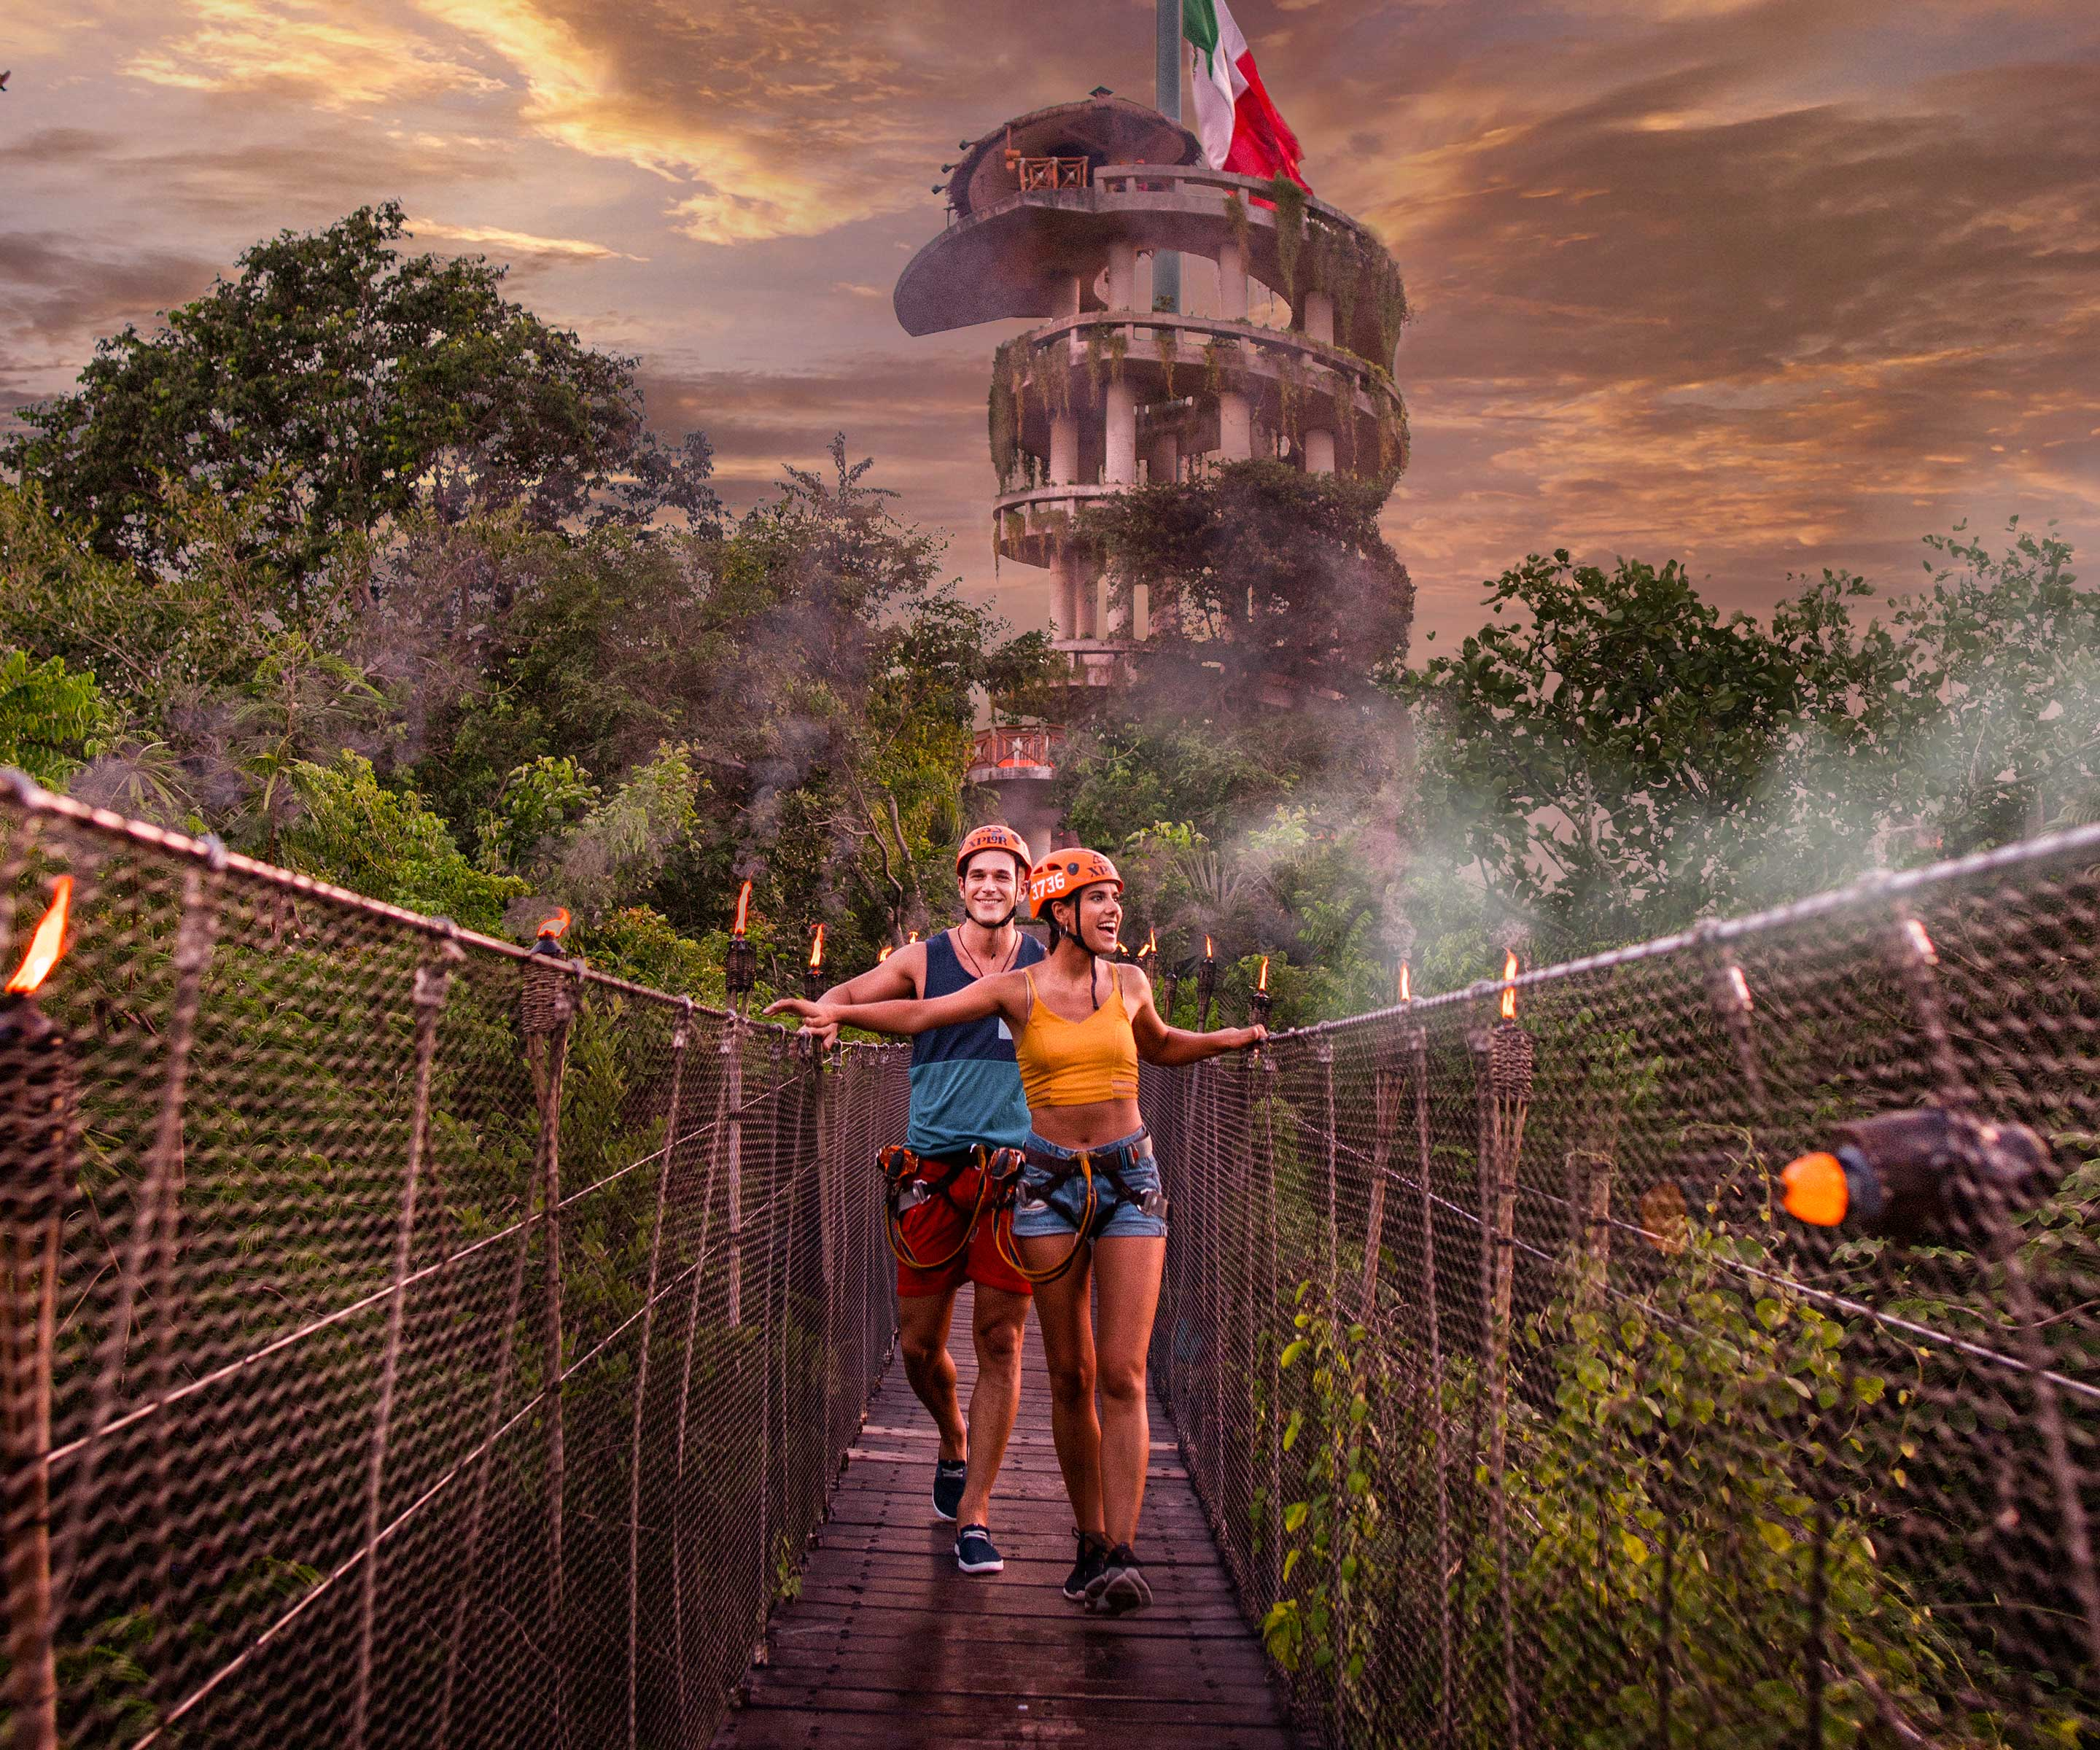 Have a blast in a night adventure through underground rivers at Xplor Fuego